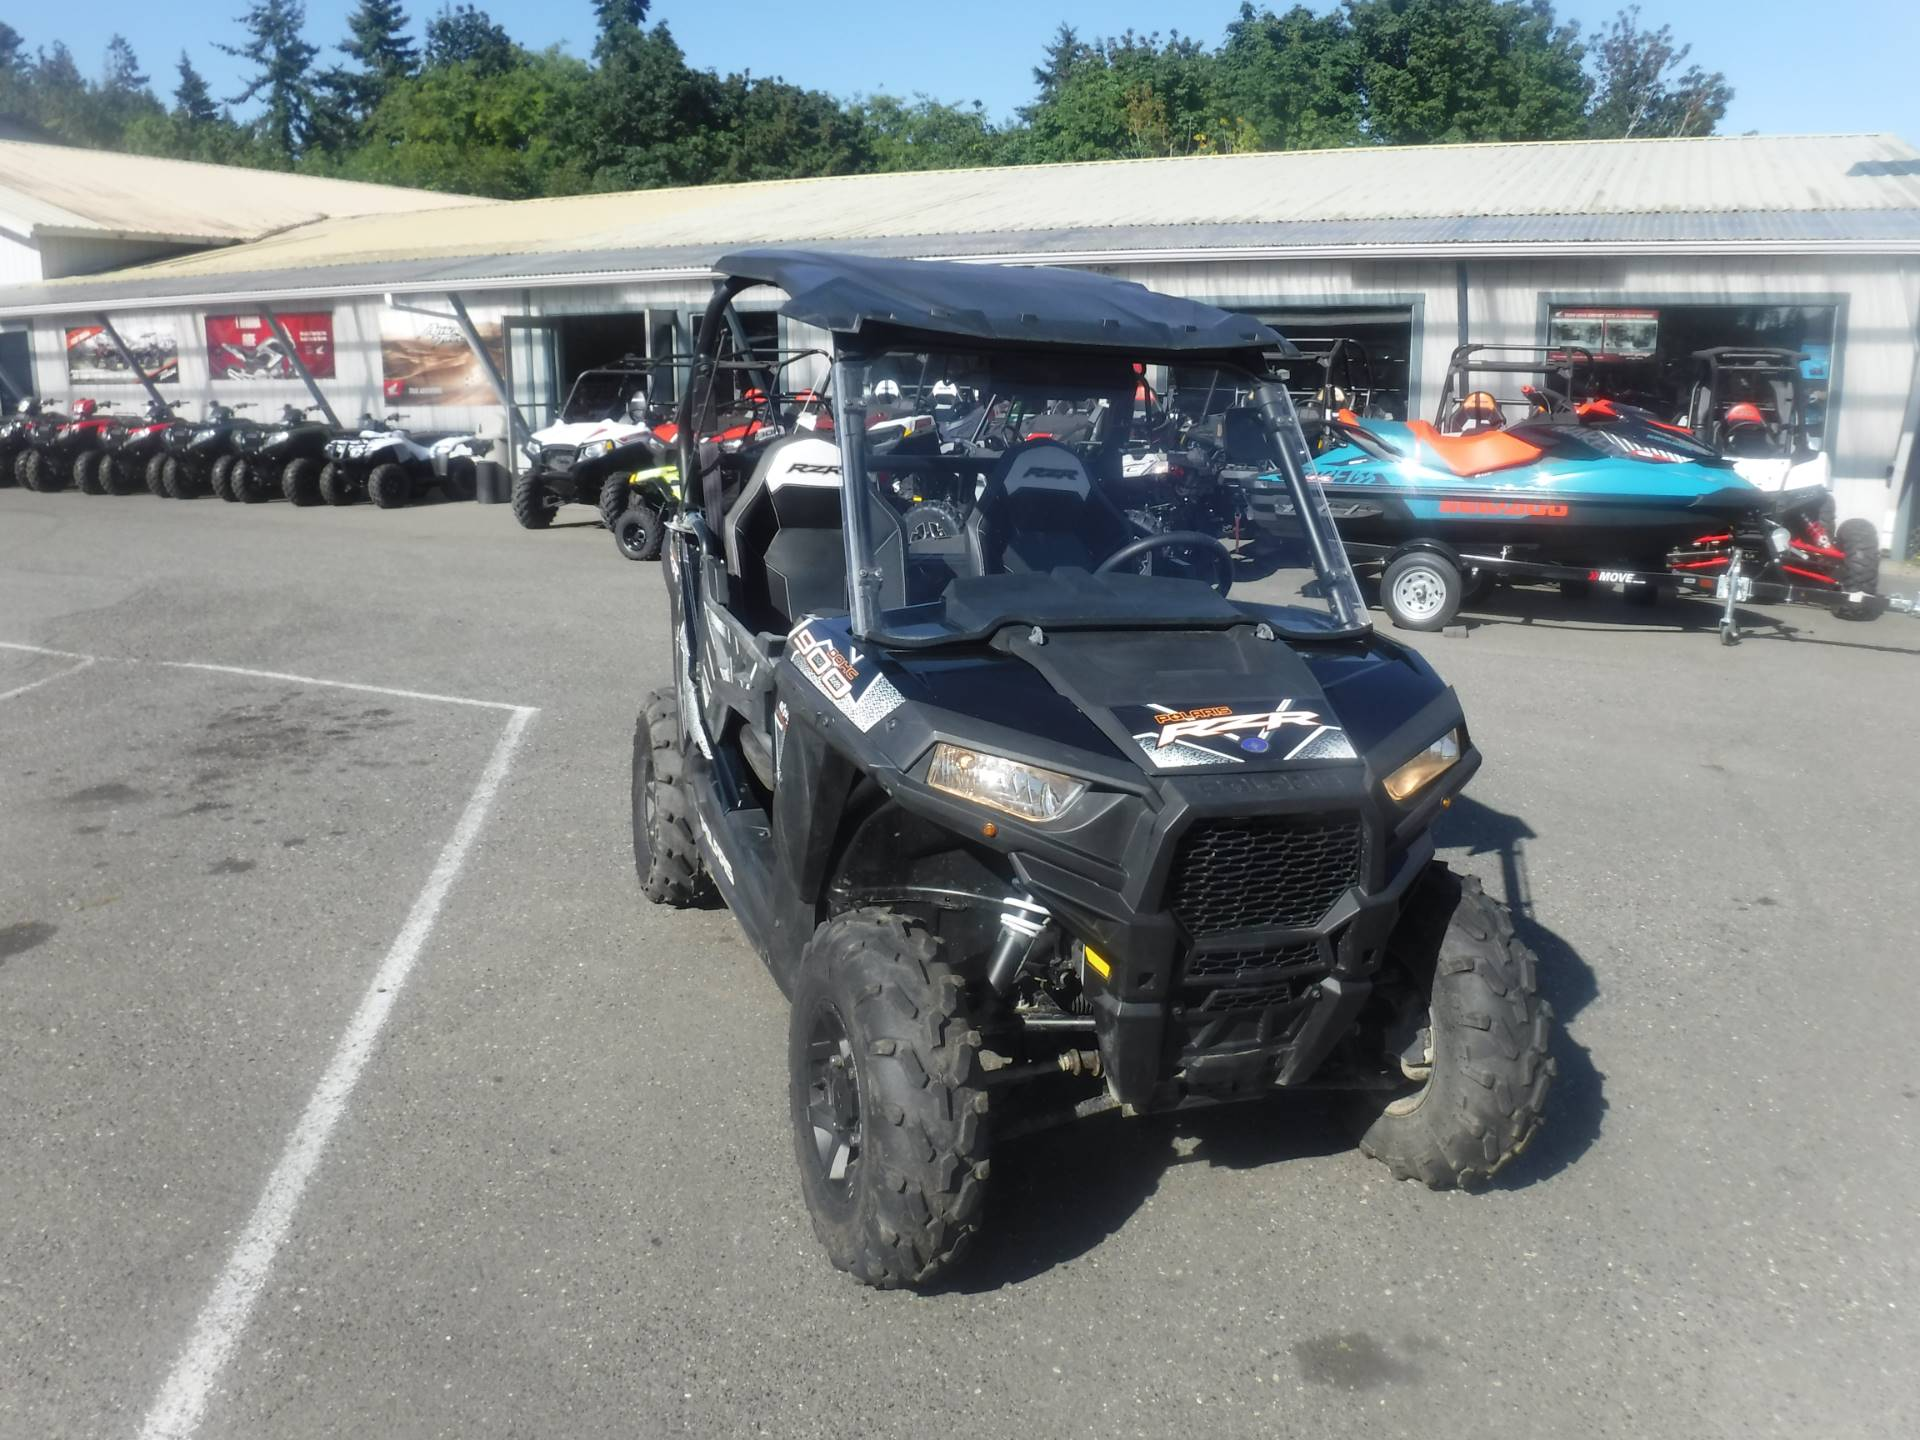 2017 Polaris RZR 900 EPS in Port Angeles, Washington - Photo 2